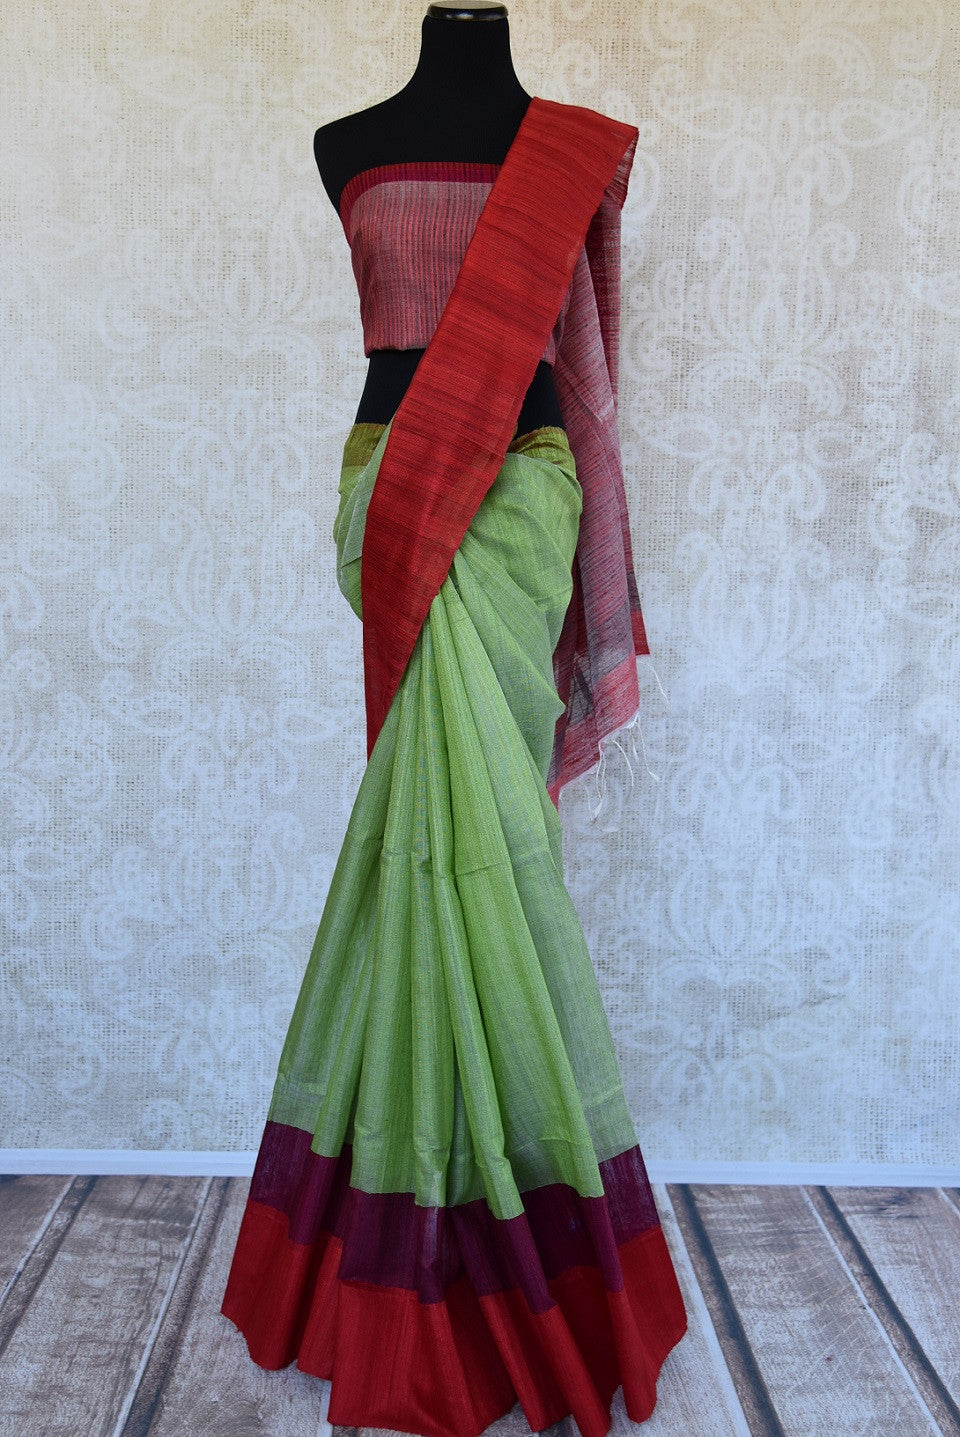 Matka silk saree in pista green and red color. Perfect saree for casual Indian gatherings and pujas.-full view